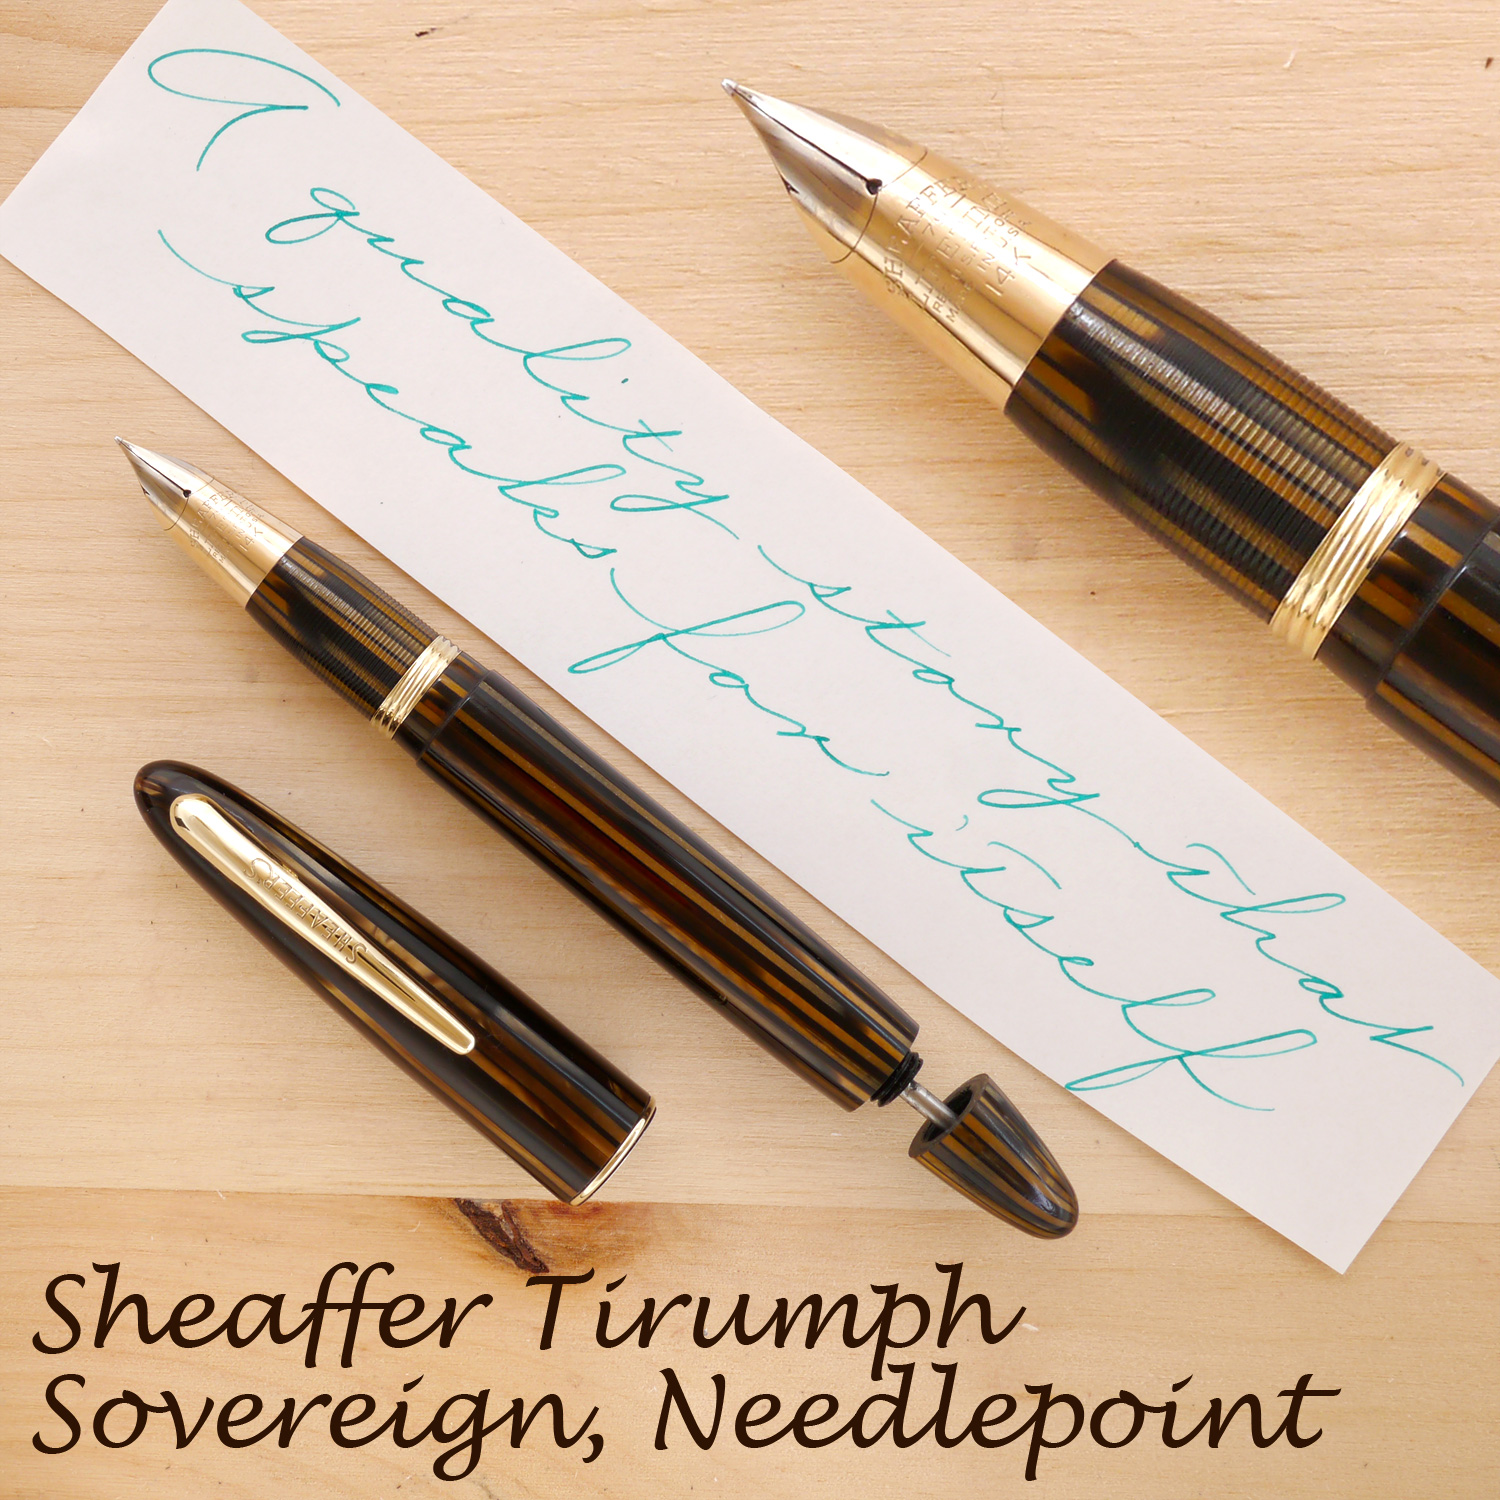 Sheaffer Triumph Sovereign, Golden Brown, Needlepoint, with the cap off and the plunger partially extended